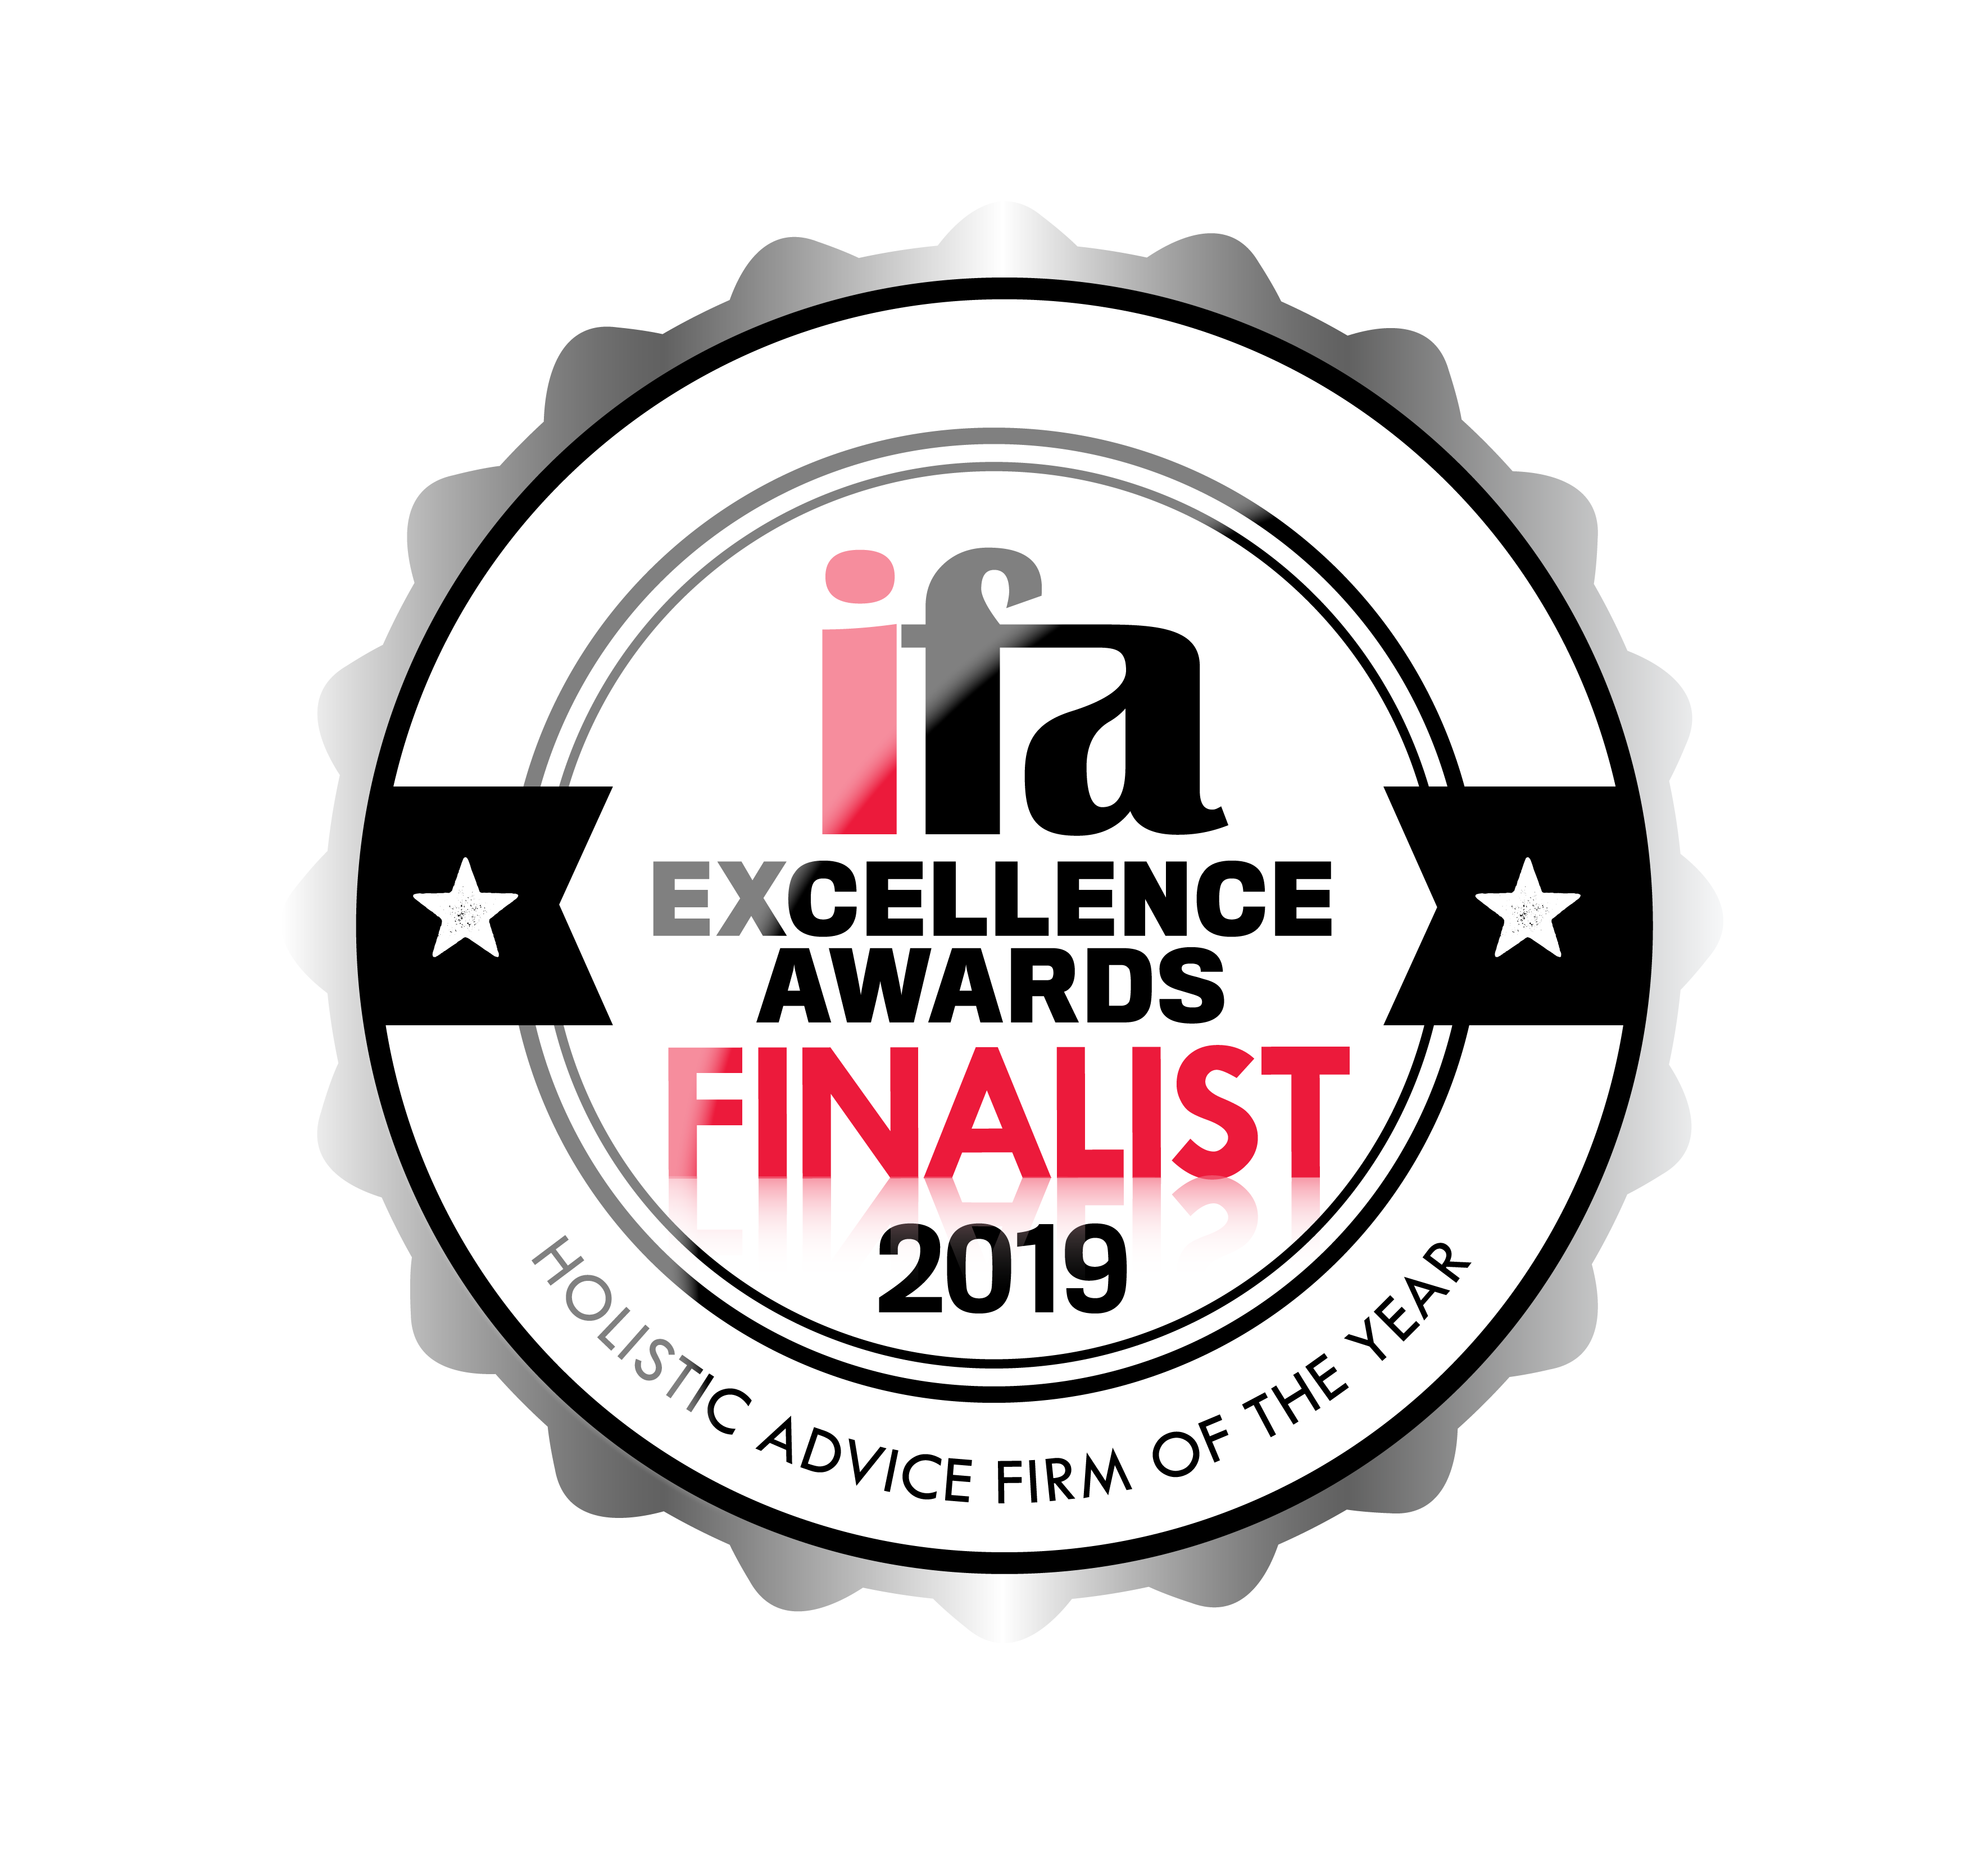 IFA SEAL 2019 FINALIST Holistic Advice Firm of the Year